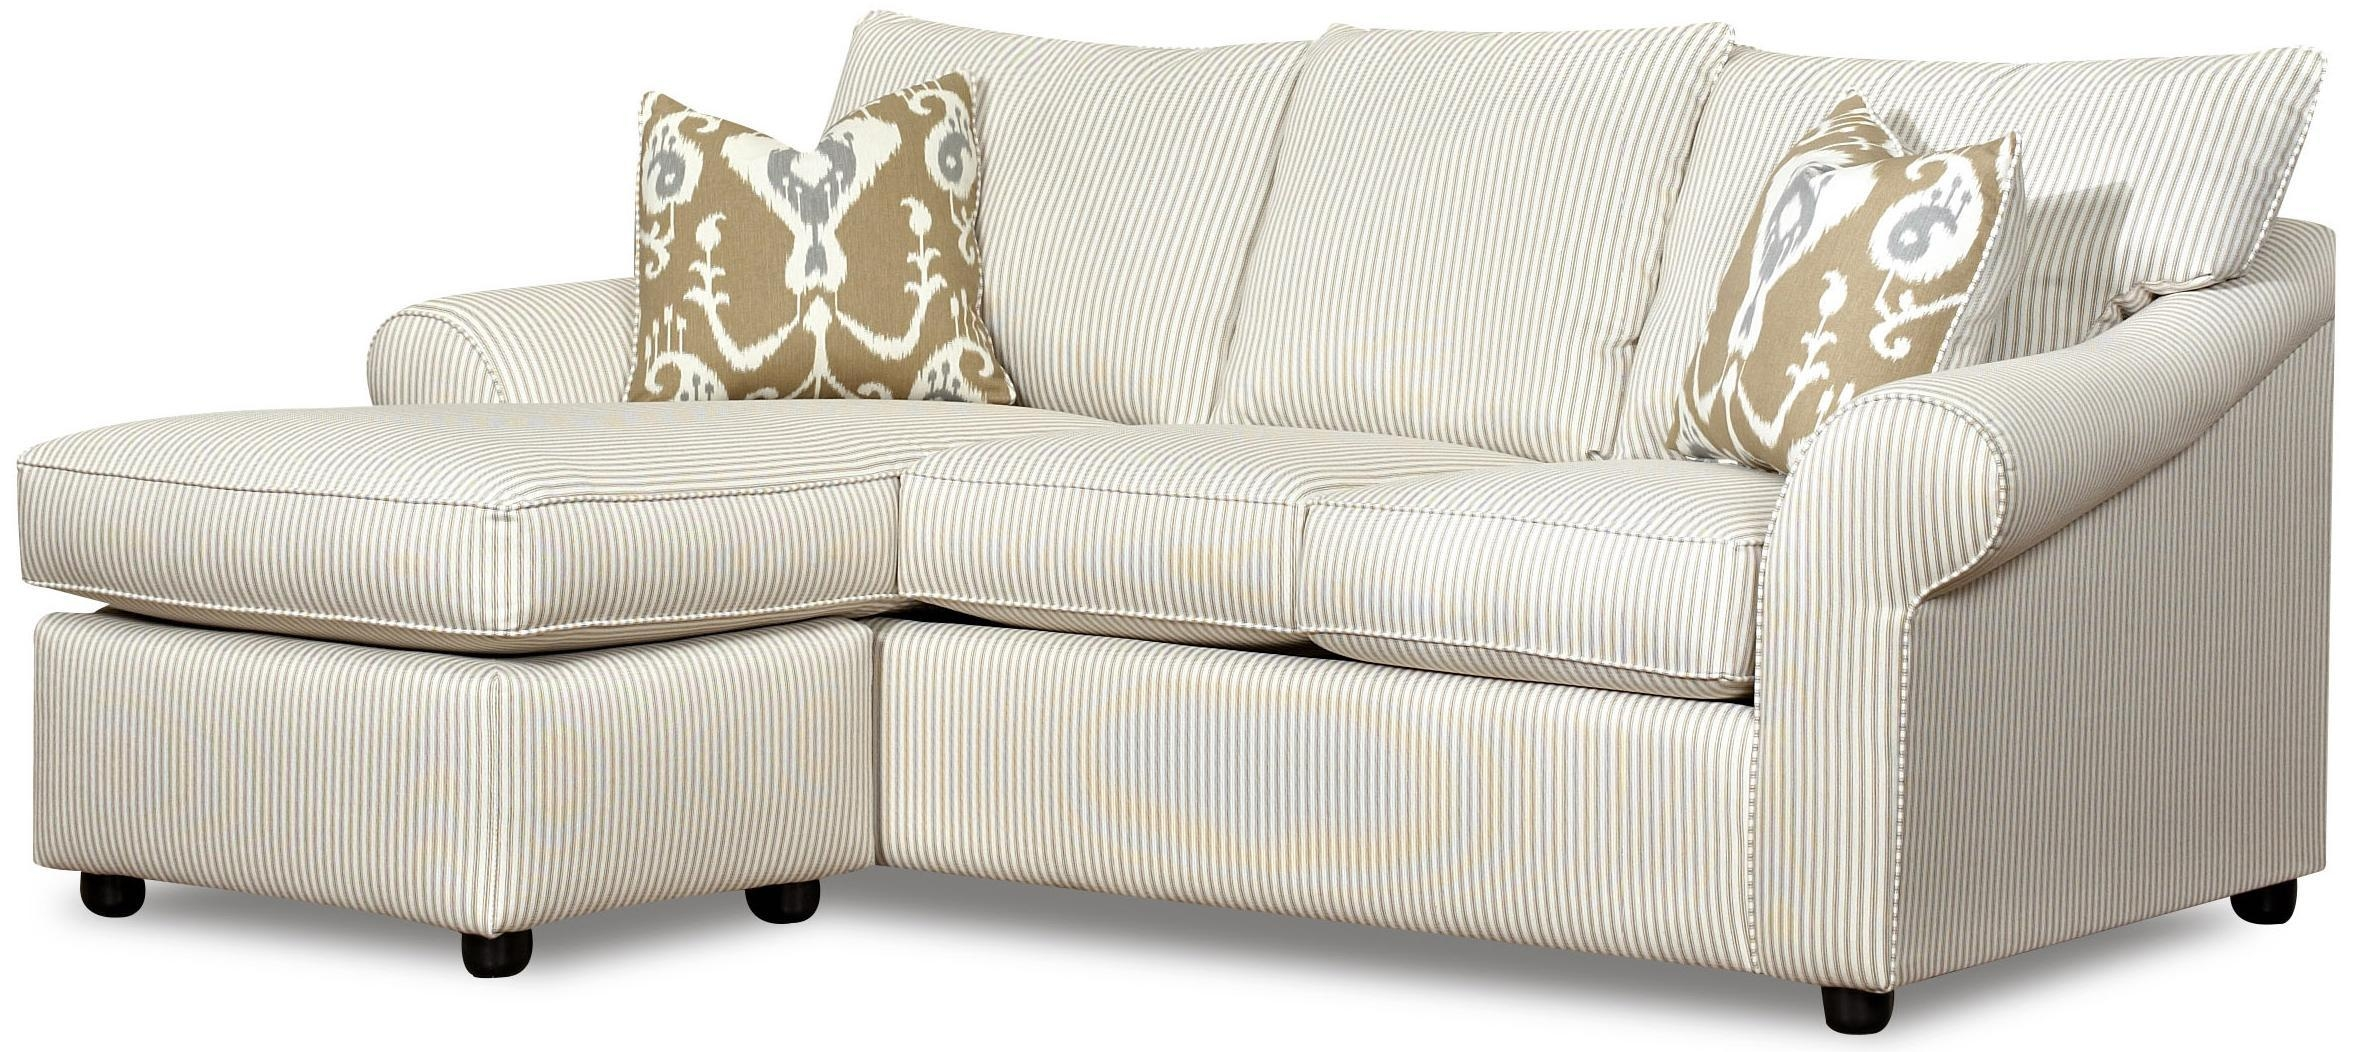 20 top sofas with chaise longue sofa ideas for Chaise longue style sofa